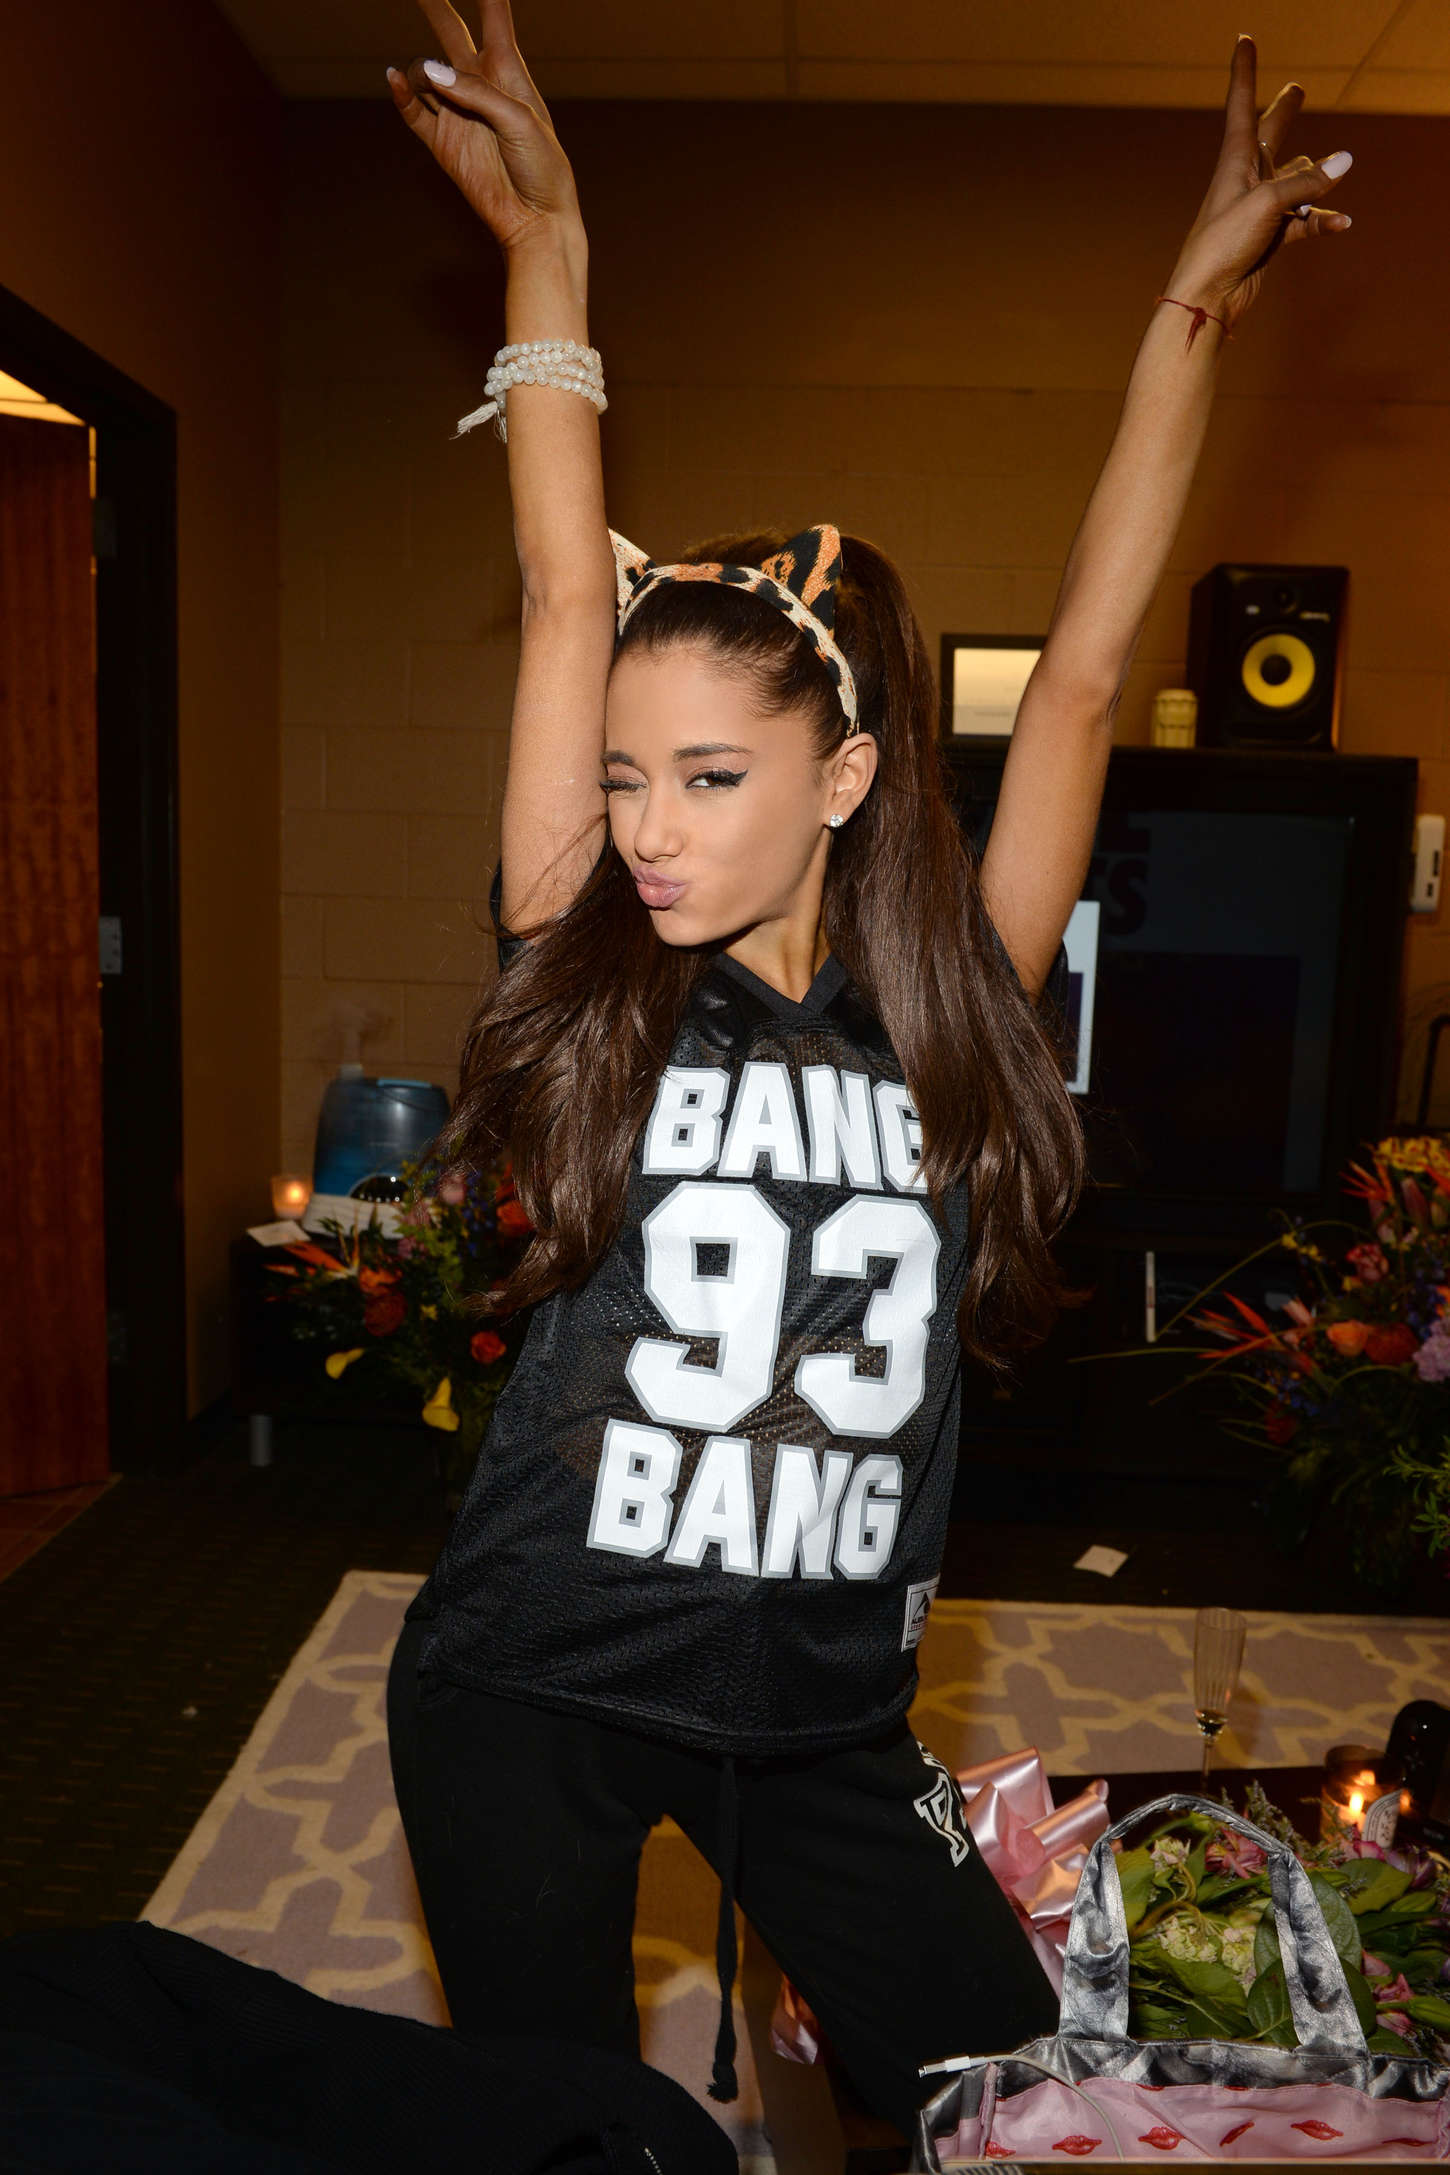 Swag Girl Wallpaper 1920x1080 Ariana Grande Opening Night Of The Honeymoon Tour 2015